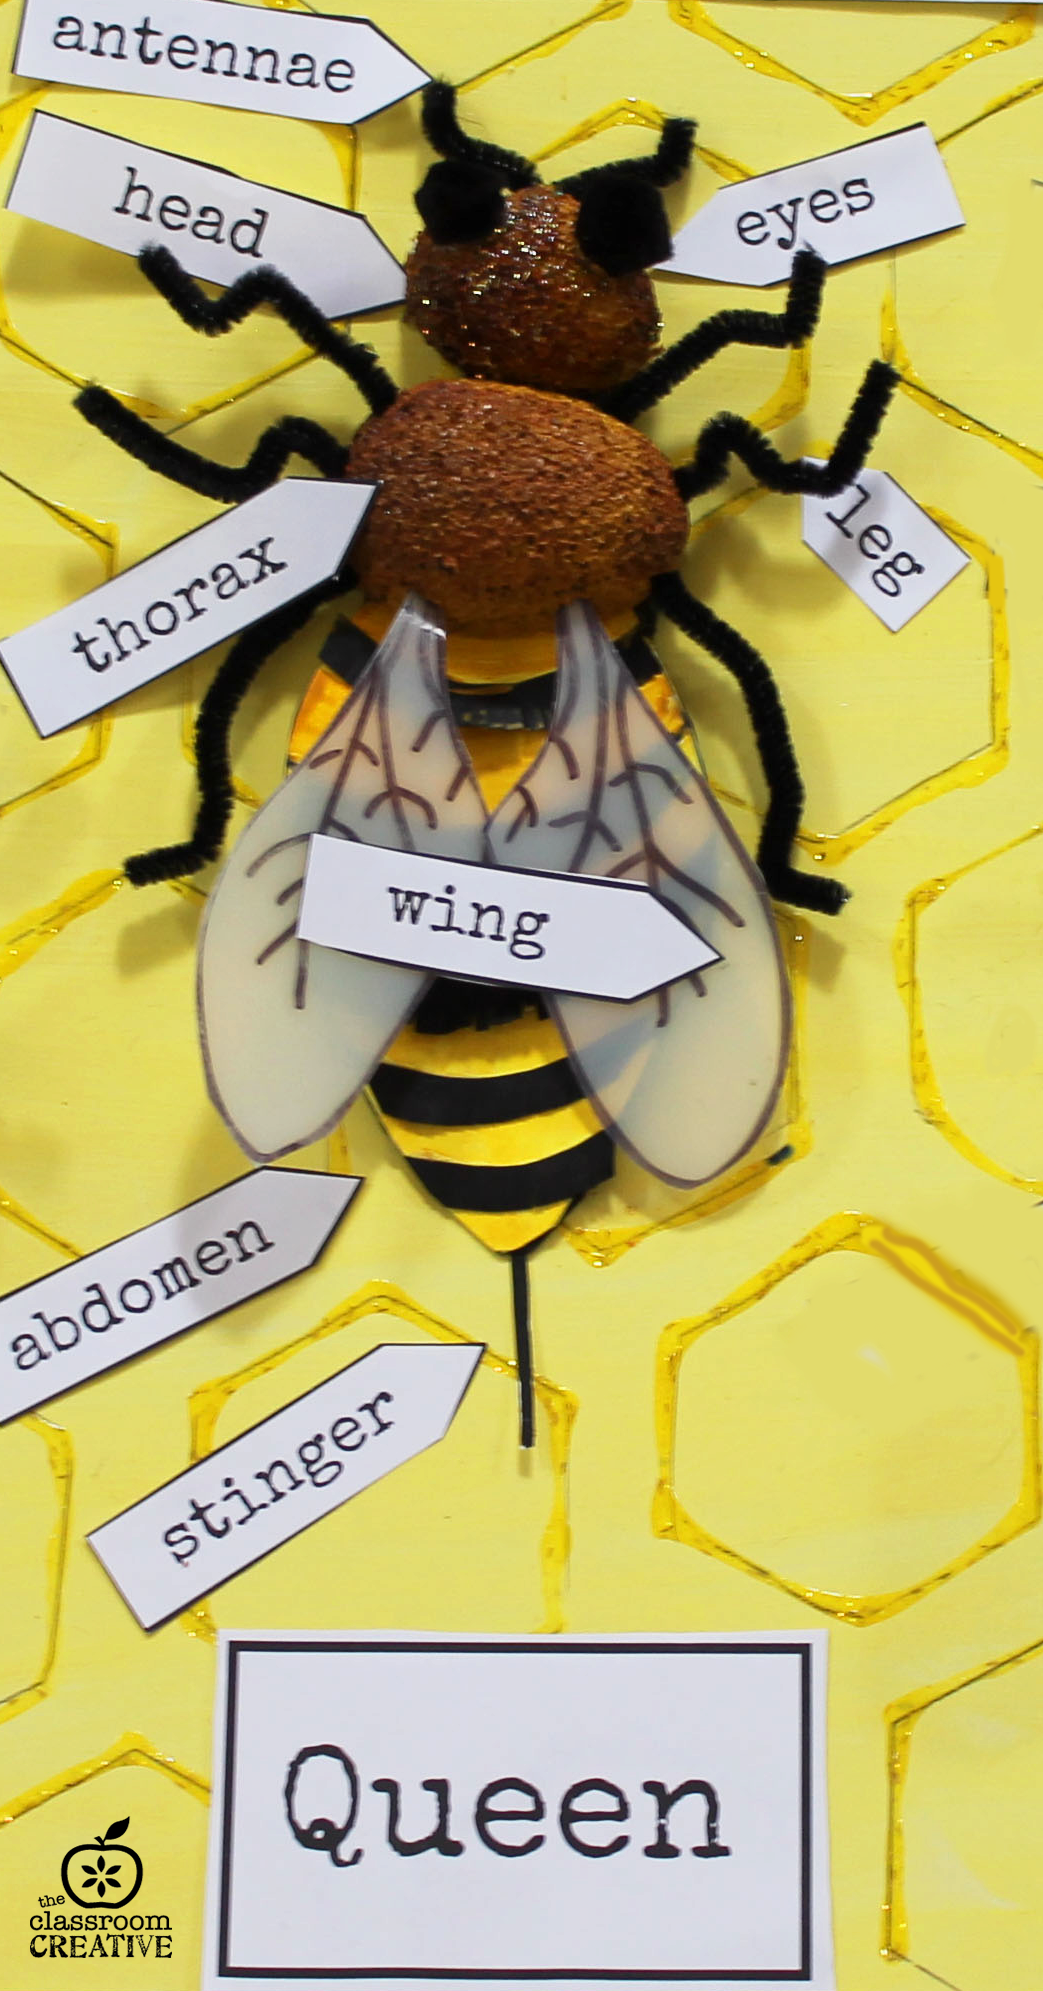 Queen Bee Craft Game Who Can Correctly Label Each Part Of The Bee In 60 Seconds Wins